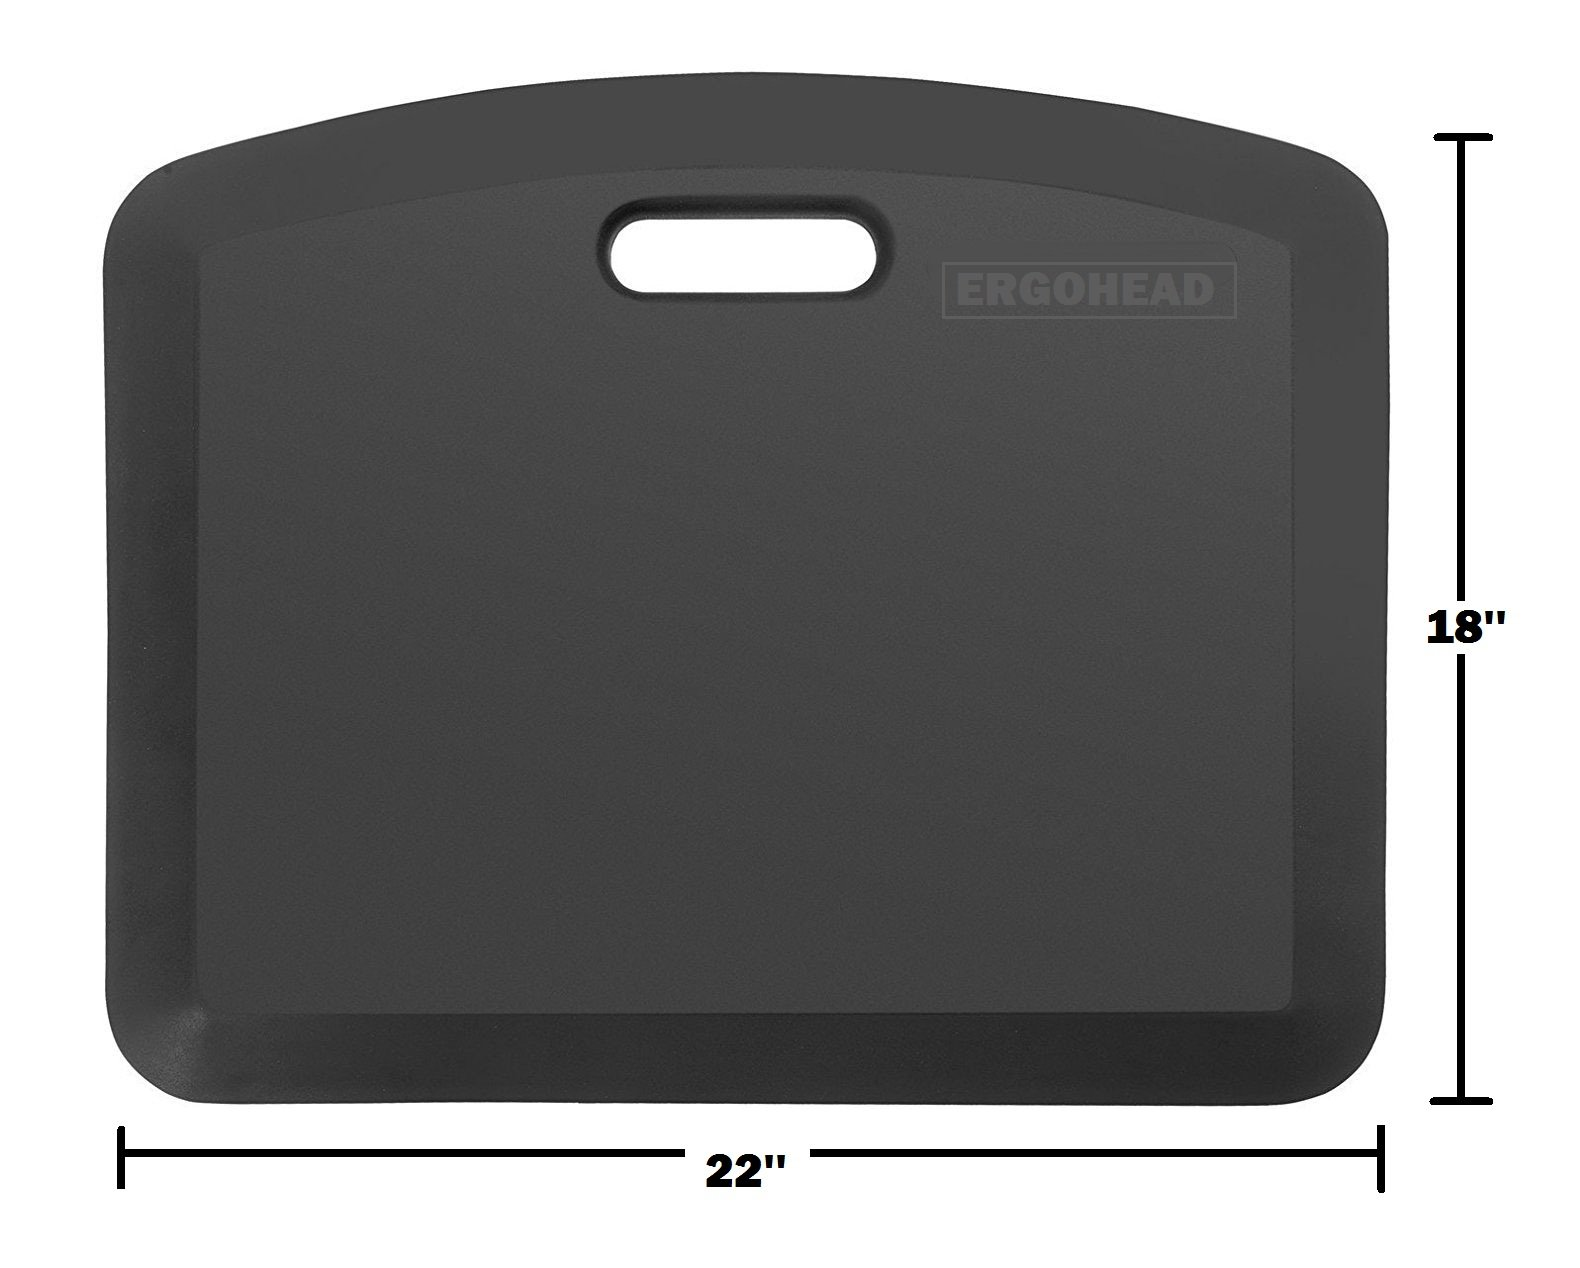 Original Ergohead Anti-Fatigue Comfort Standing Mat, Ergonomically Engineered, Perfect for Standing Desk, Kitchen, Gardening and Garages, 18 x 22 inches, Black by ergohead